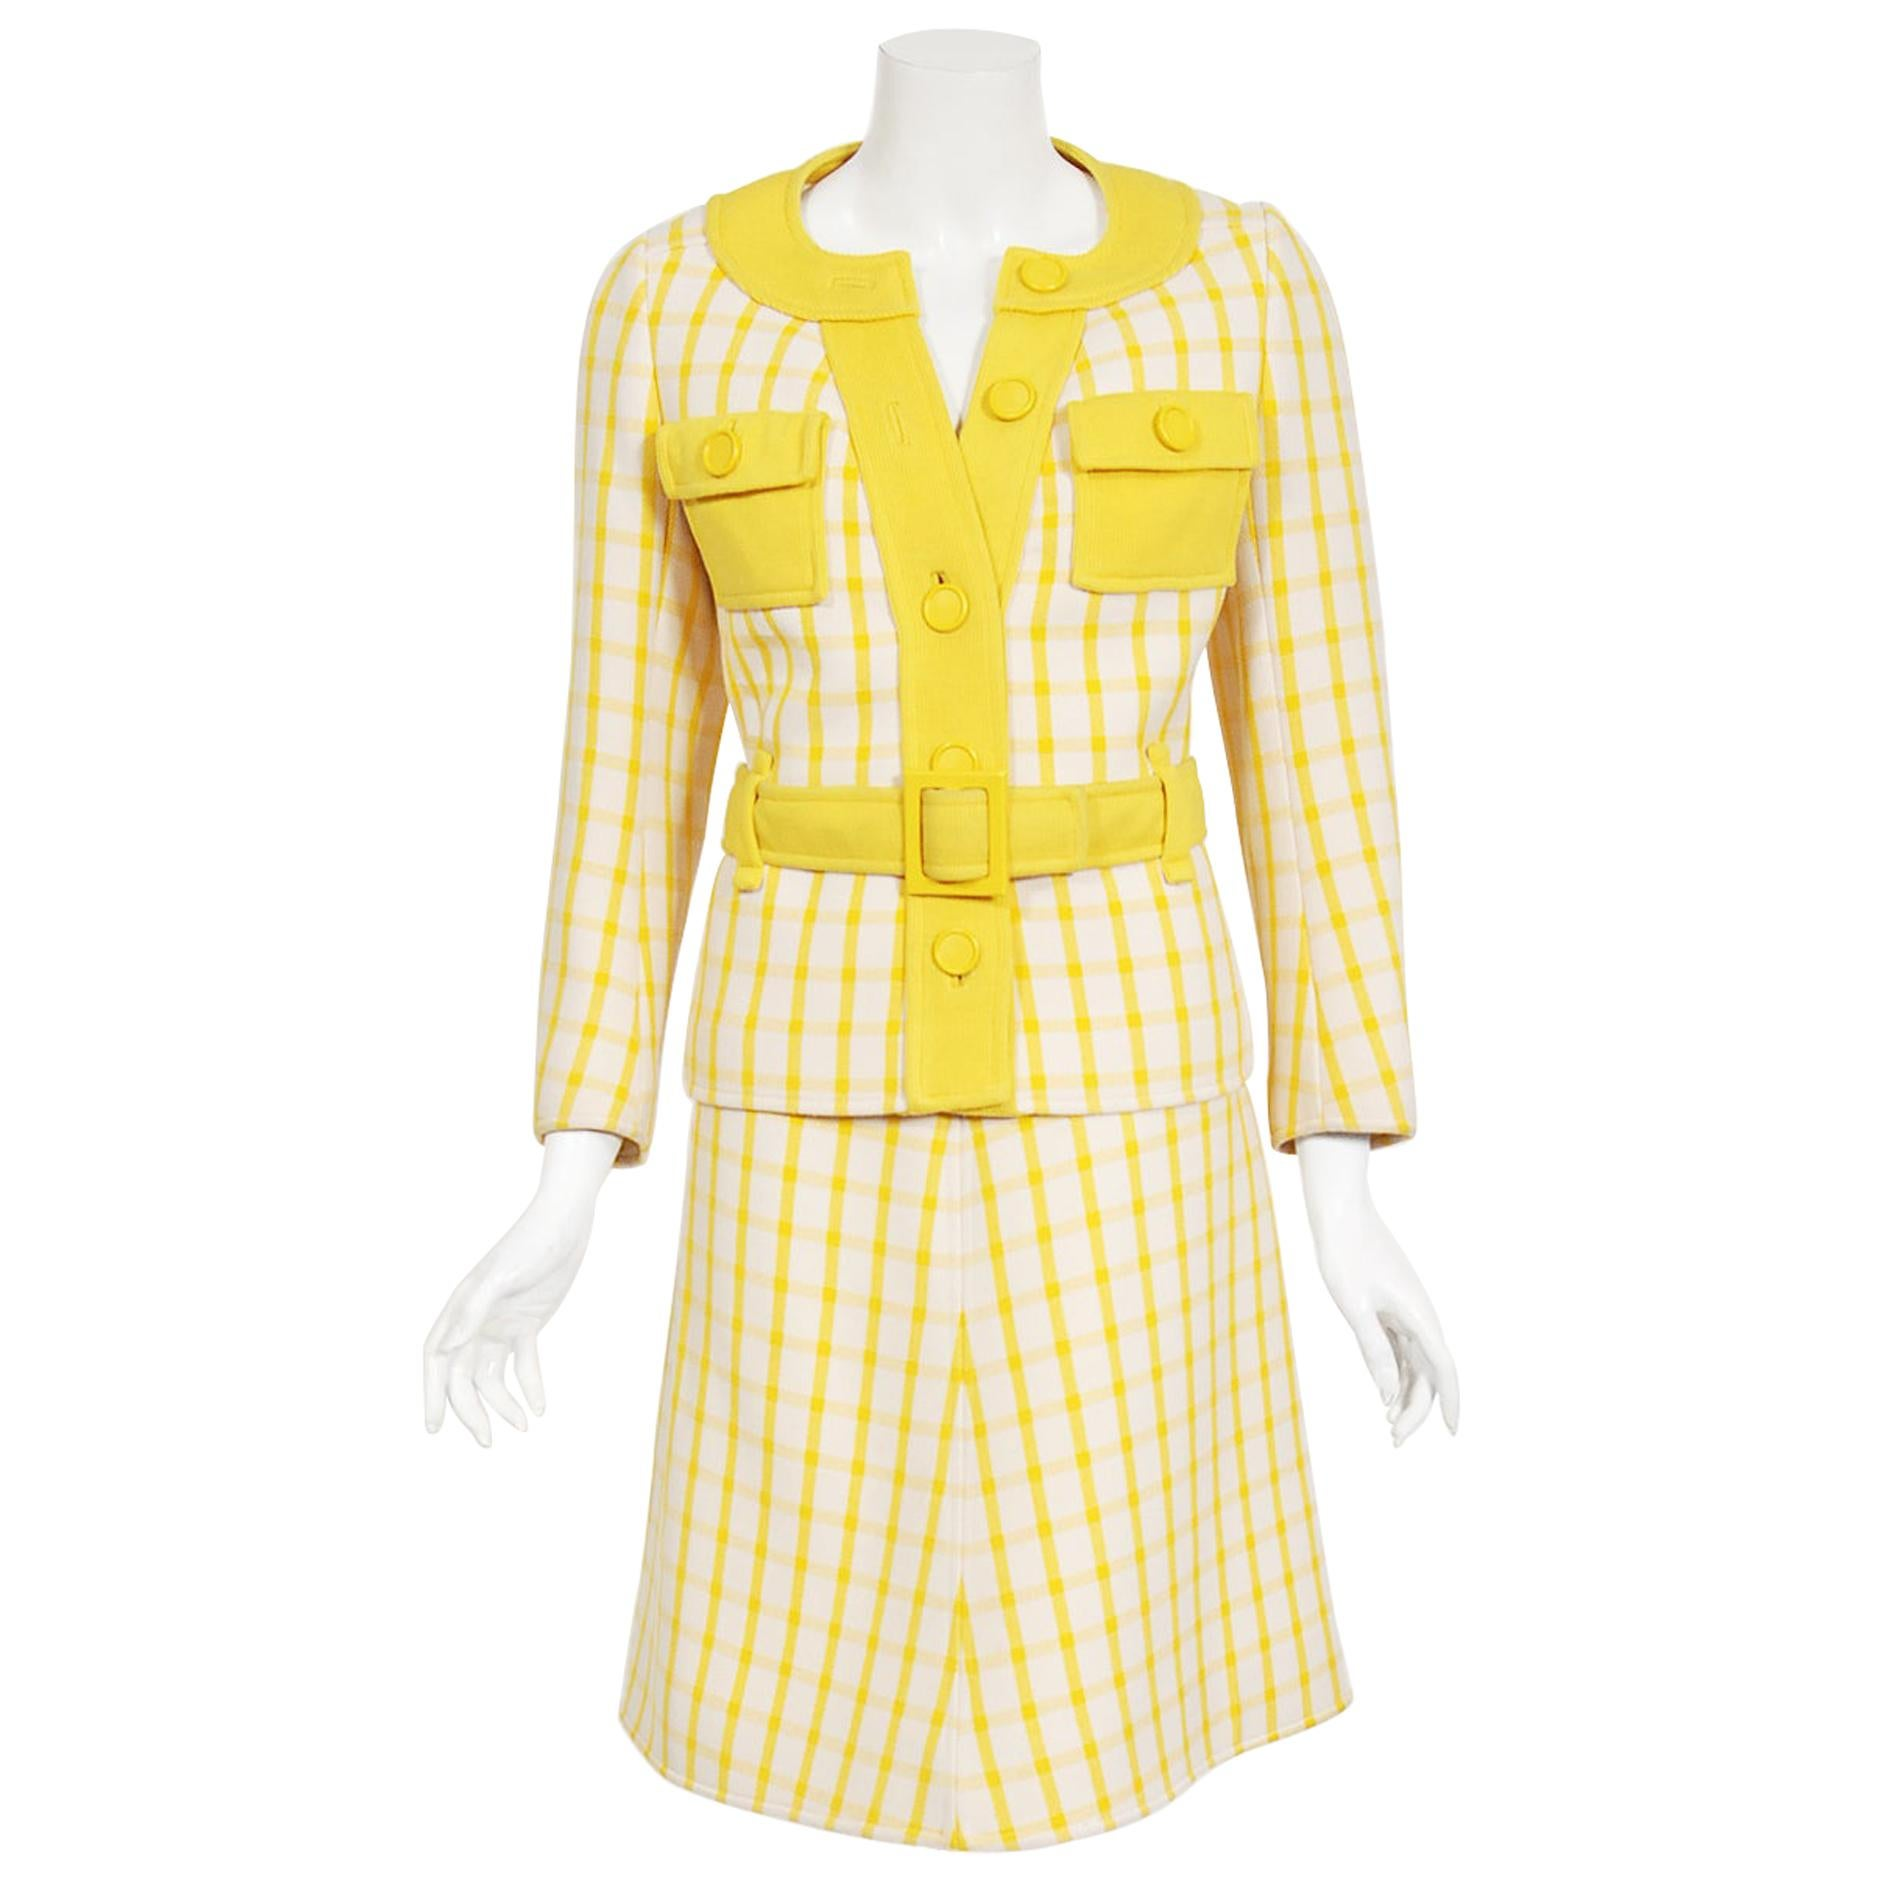 Vintage 1967 Courreges Couture Yellow White Checkered Wool Belted Jacket & Skirt